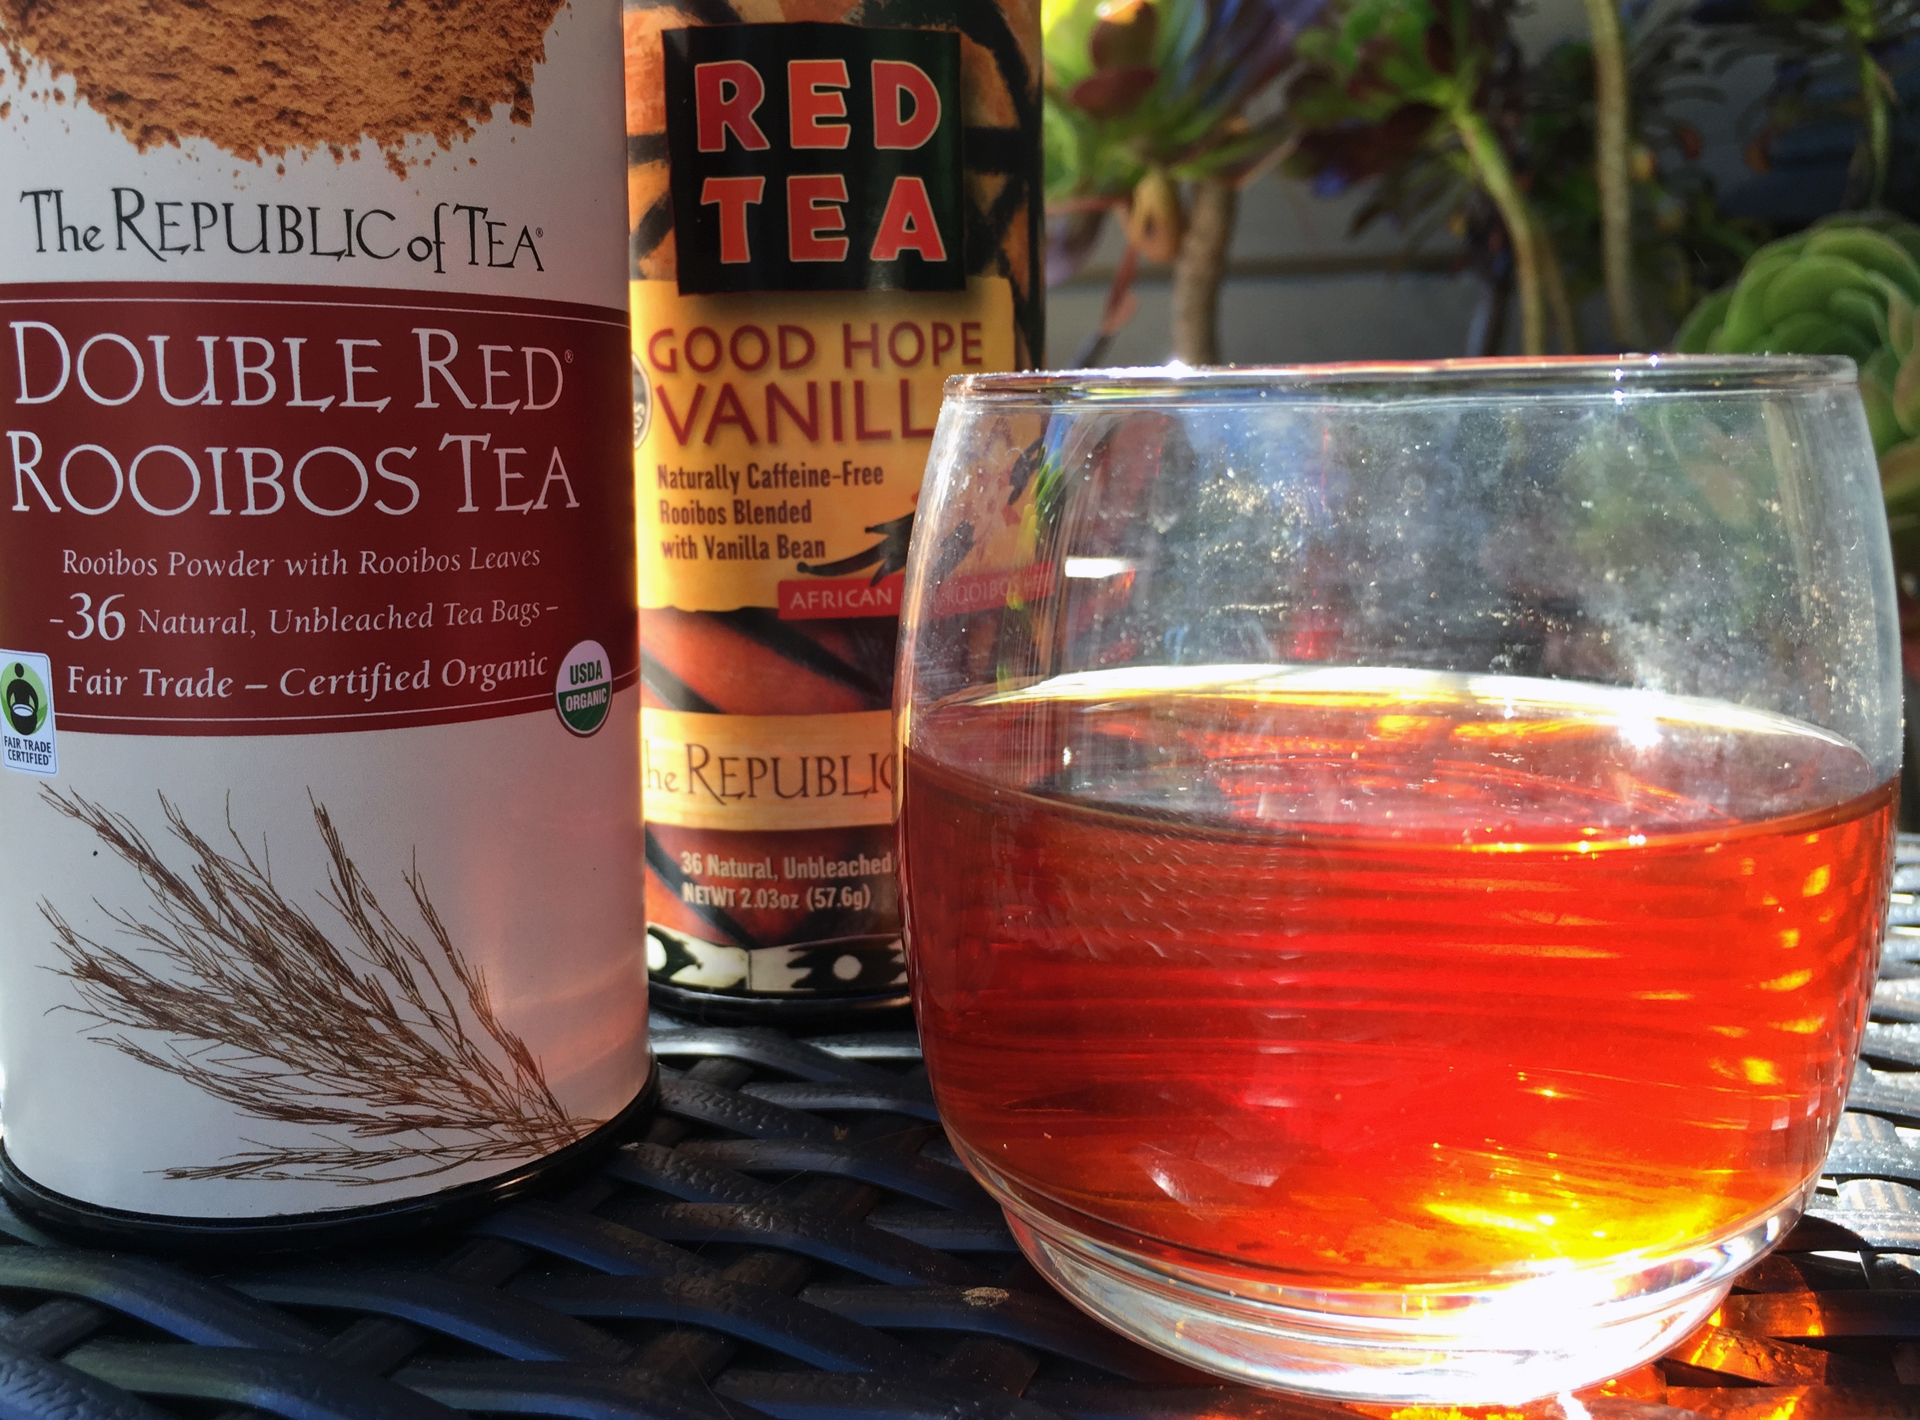 The Republic of Tea's most popular rooibos teas.